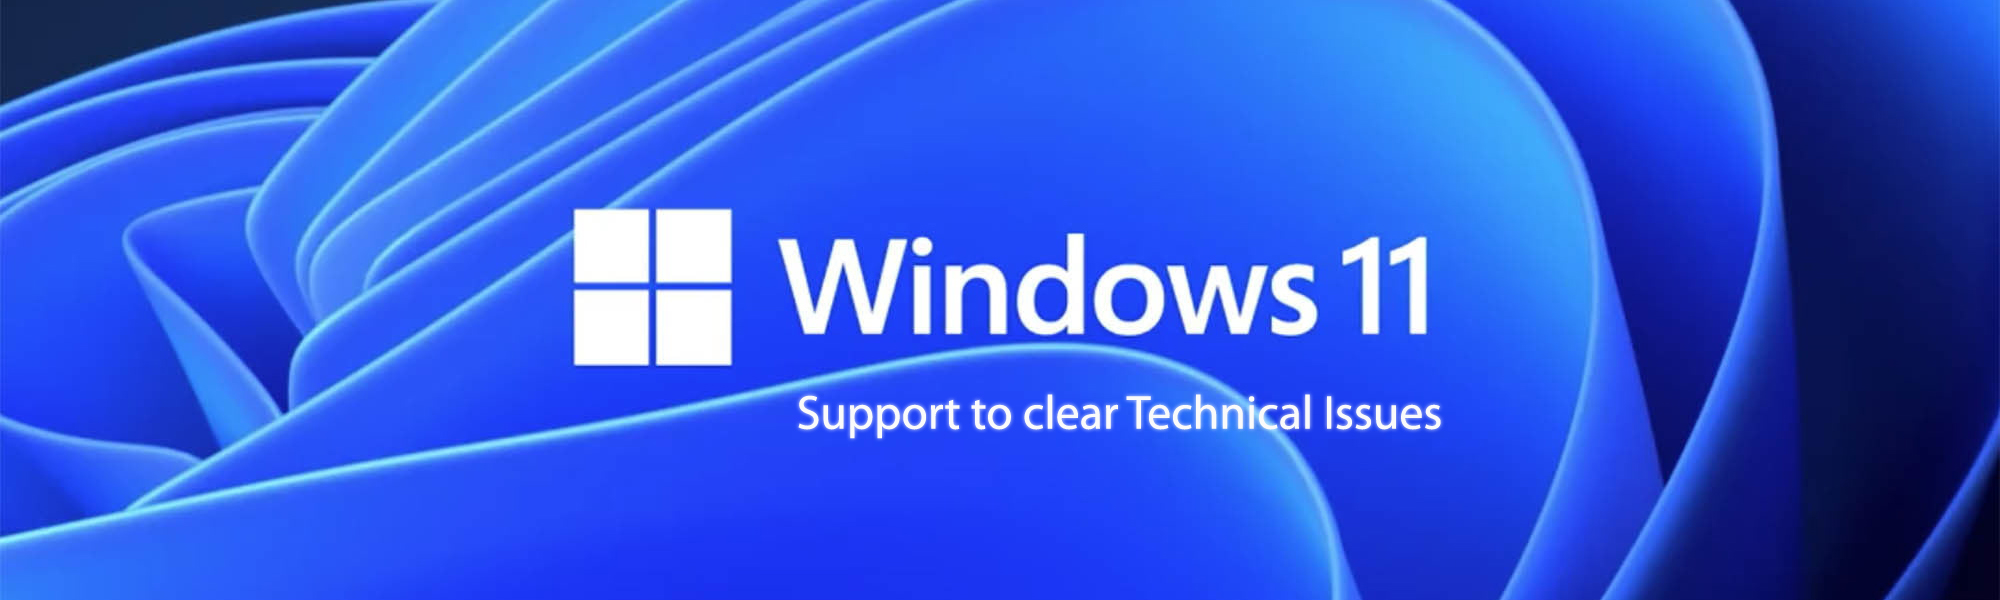 Windows 11 Support to clear Technical Issues